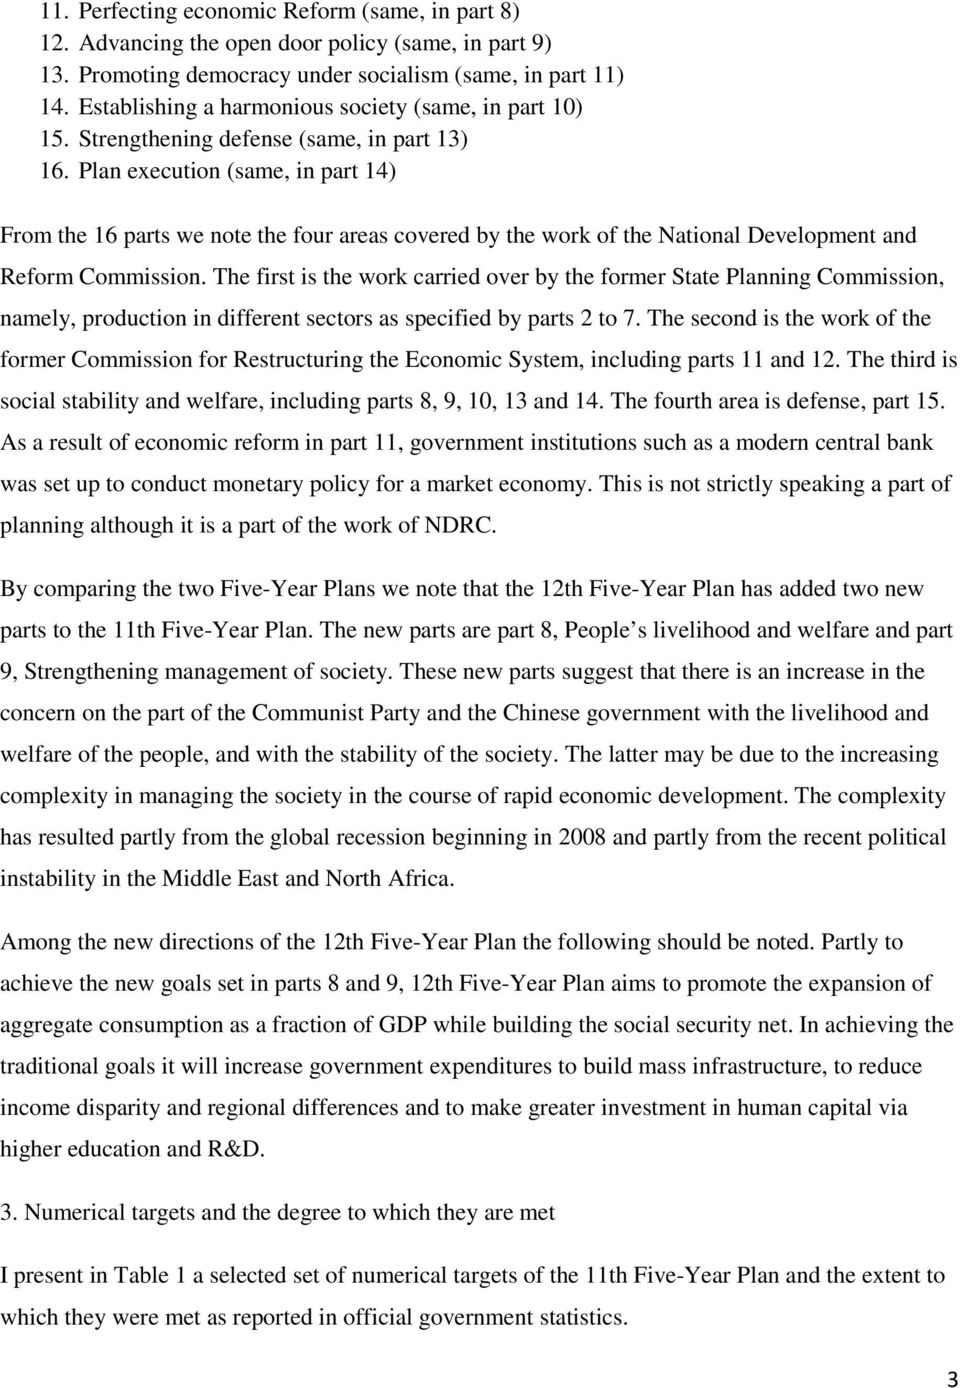 Plan execution (same, in part 14) From the 16 parts we note the four areas covered by the work of the National Development and Reform Commission.